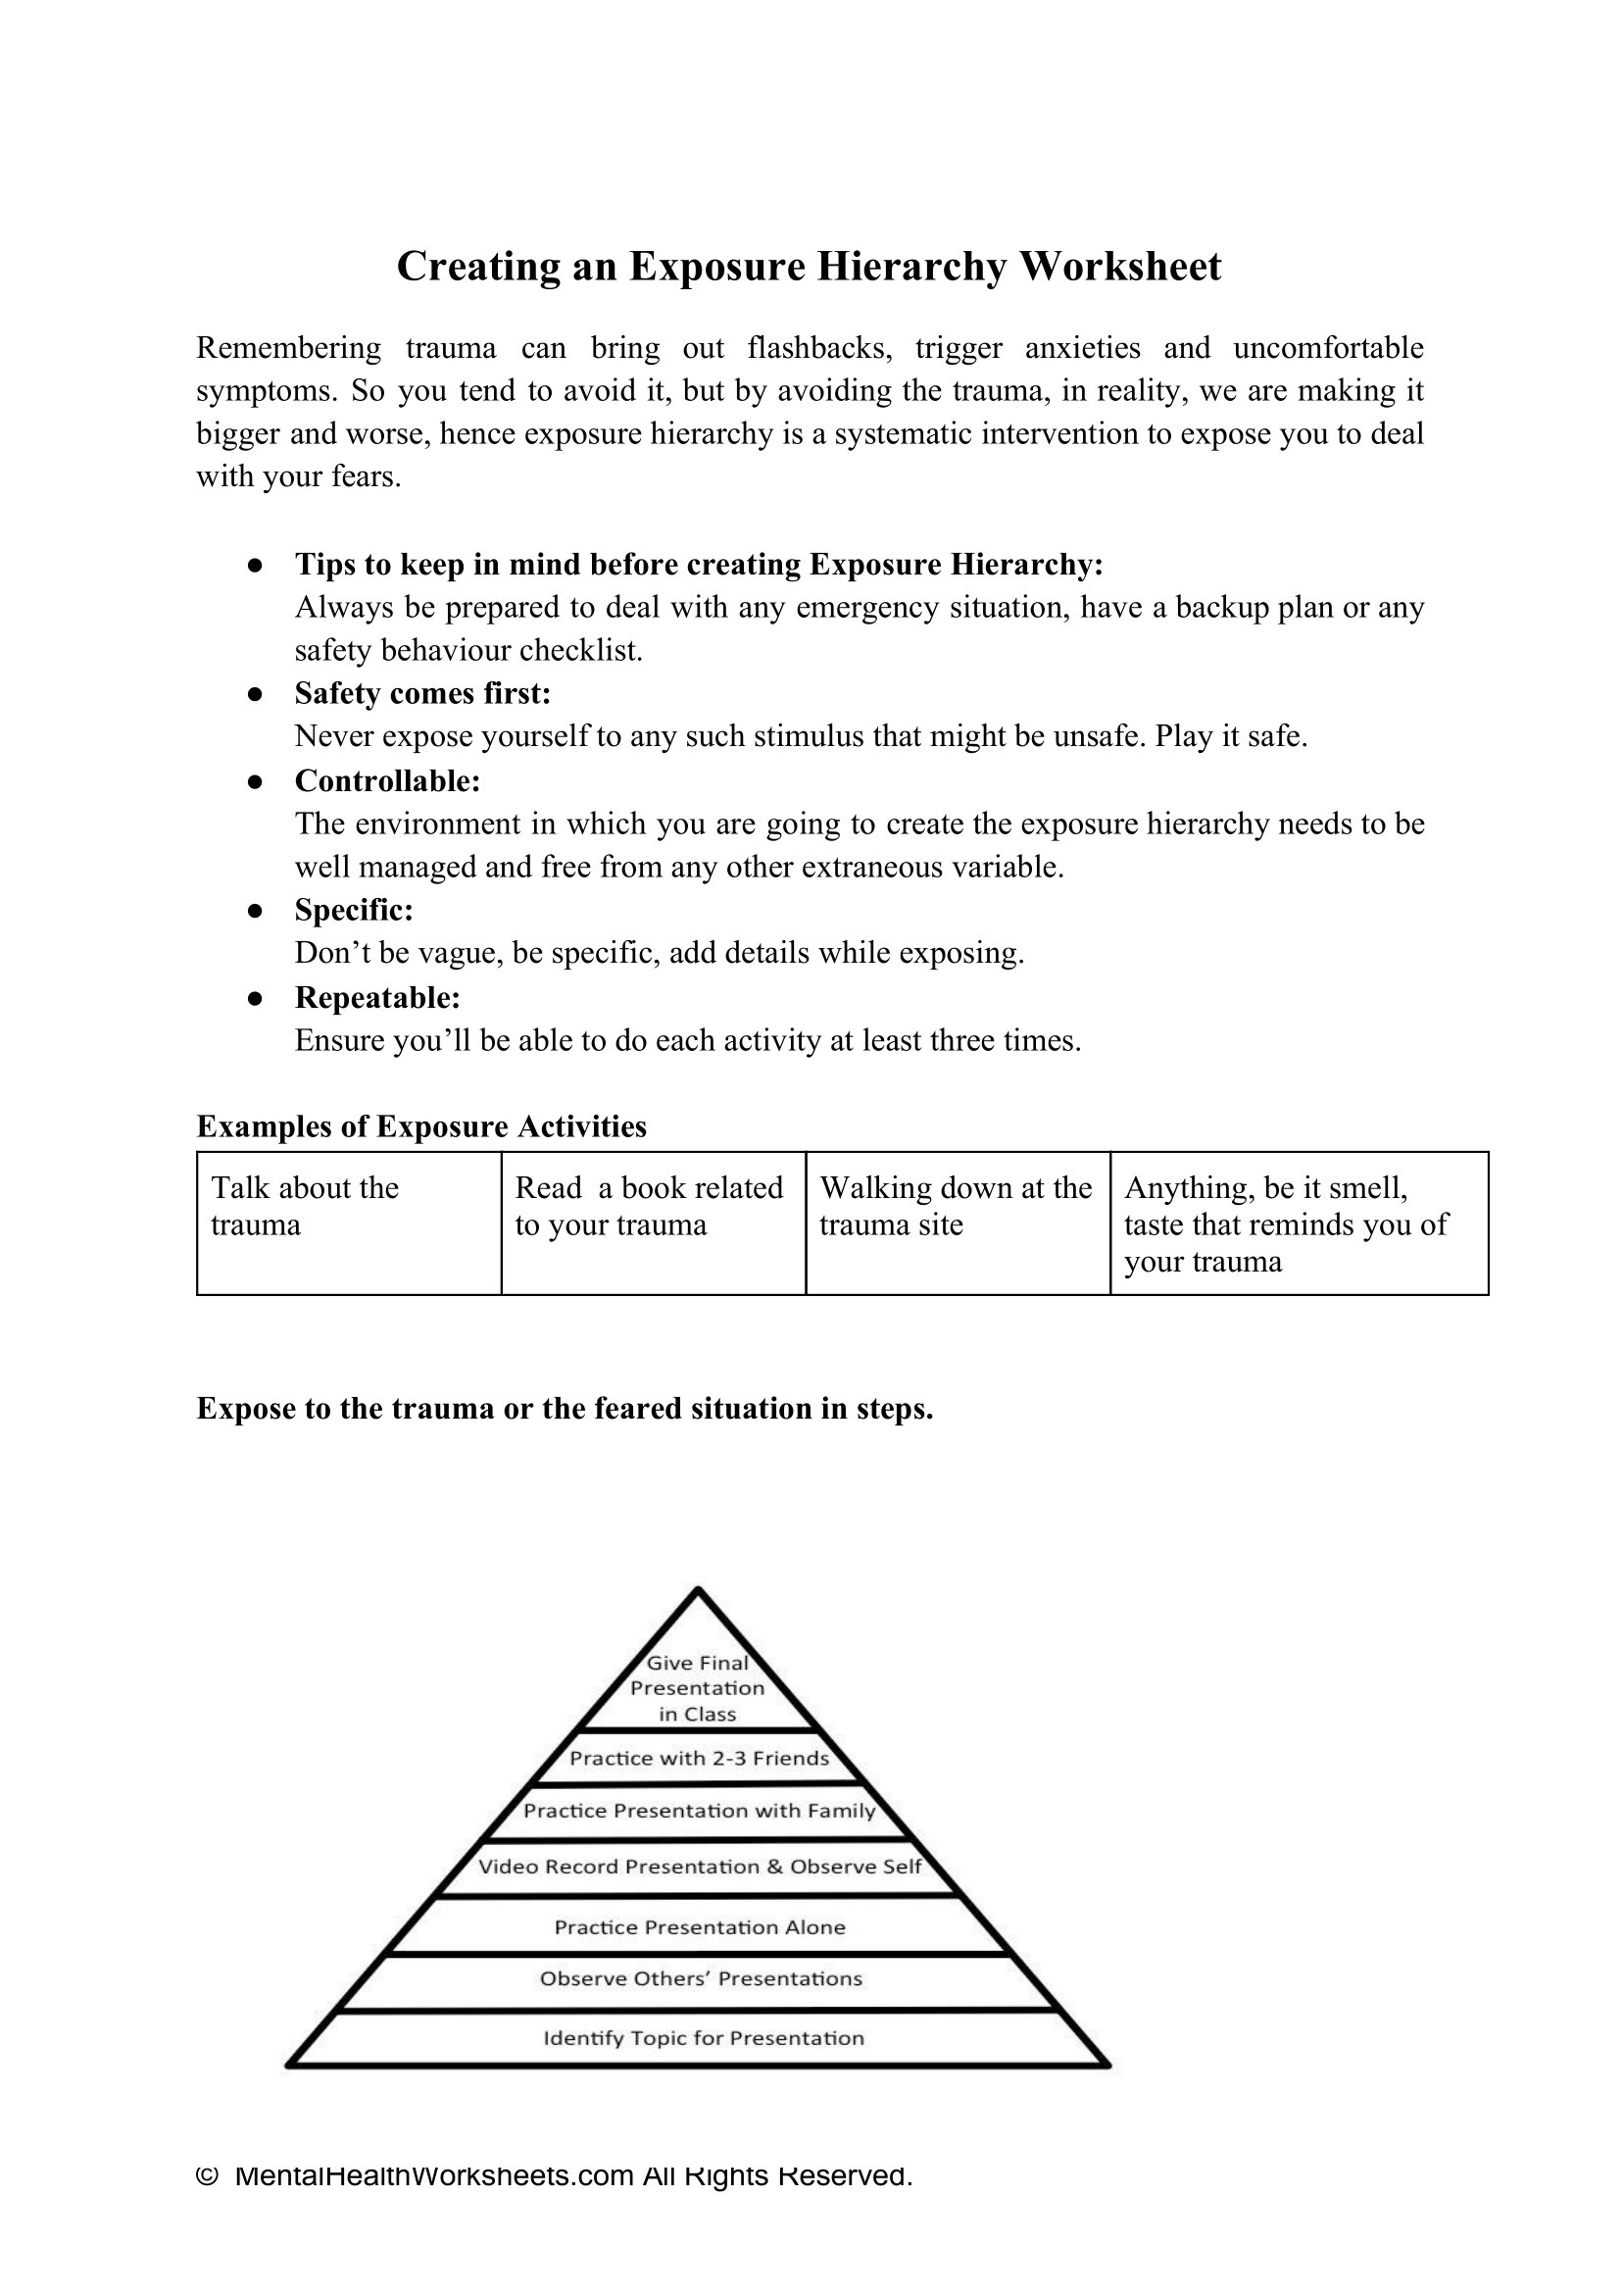 Creating An Exposure Hierarchy Worksheet